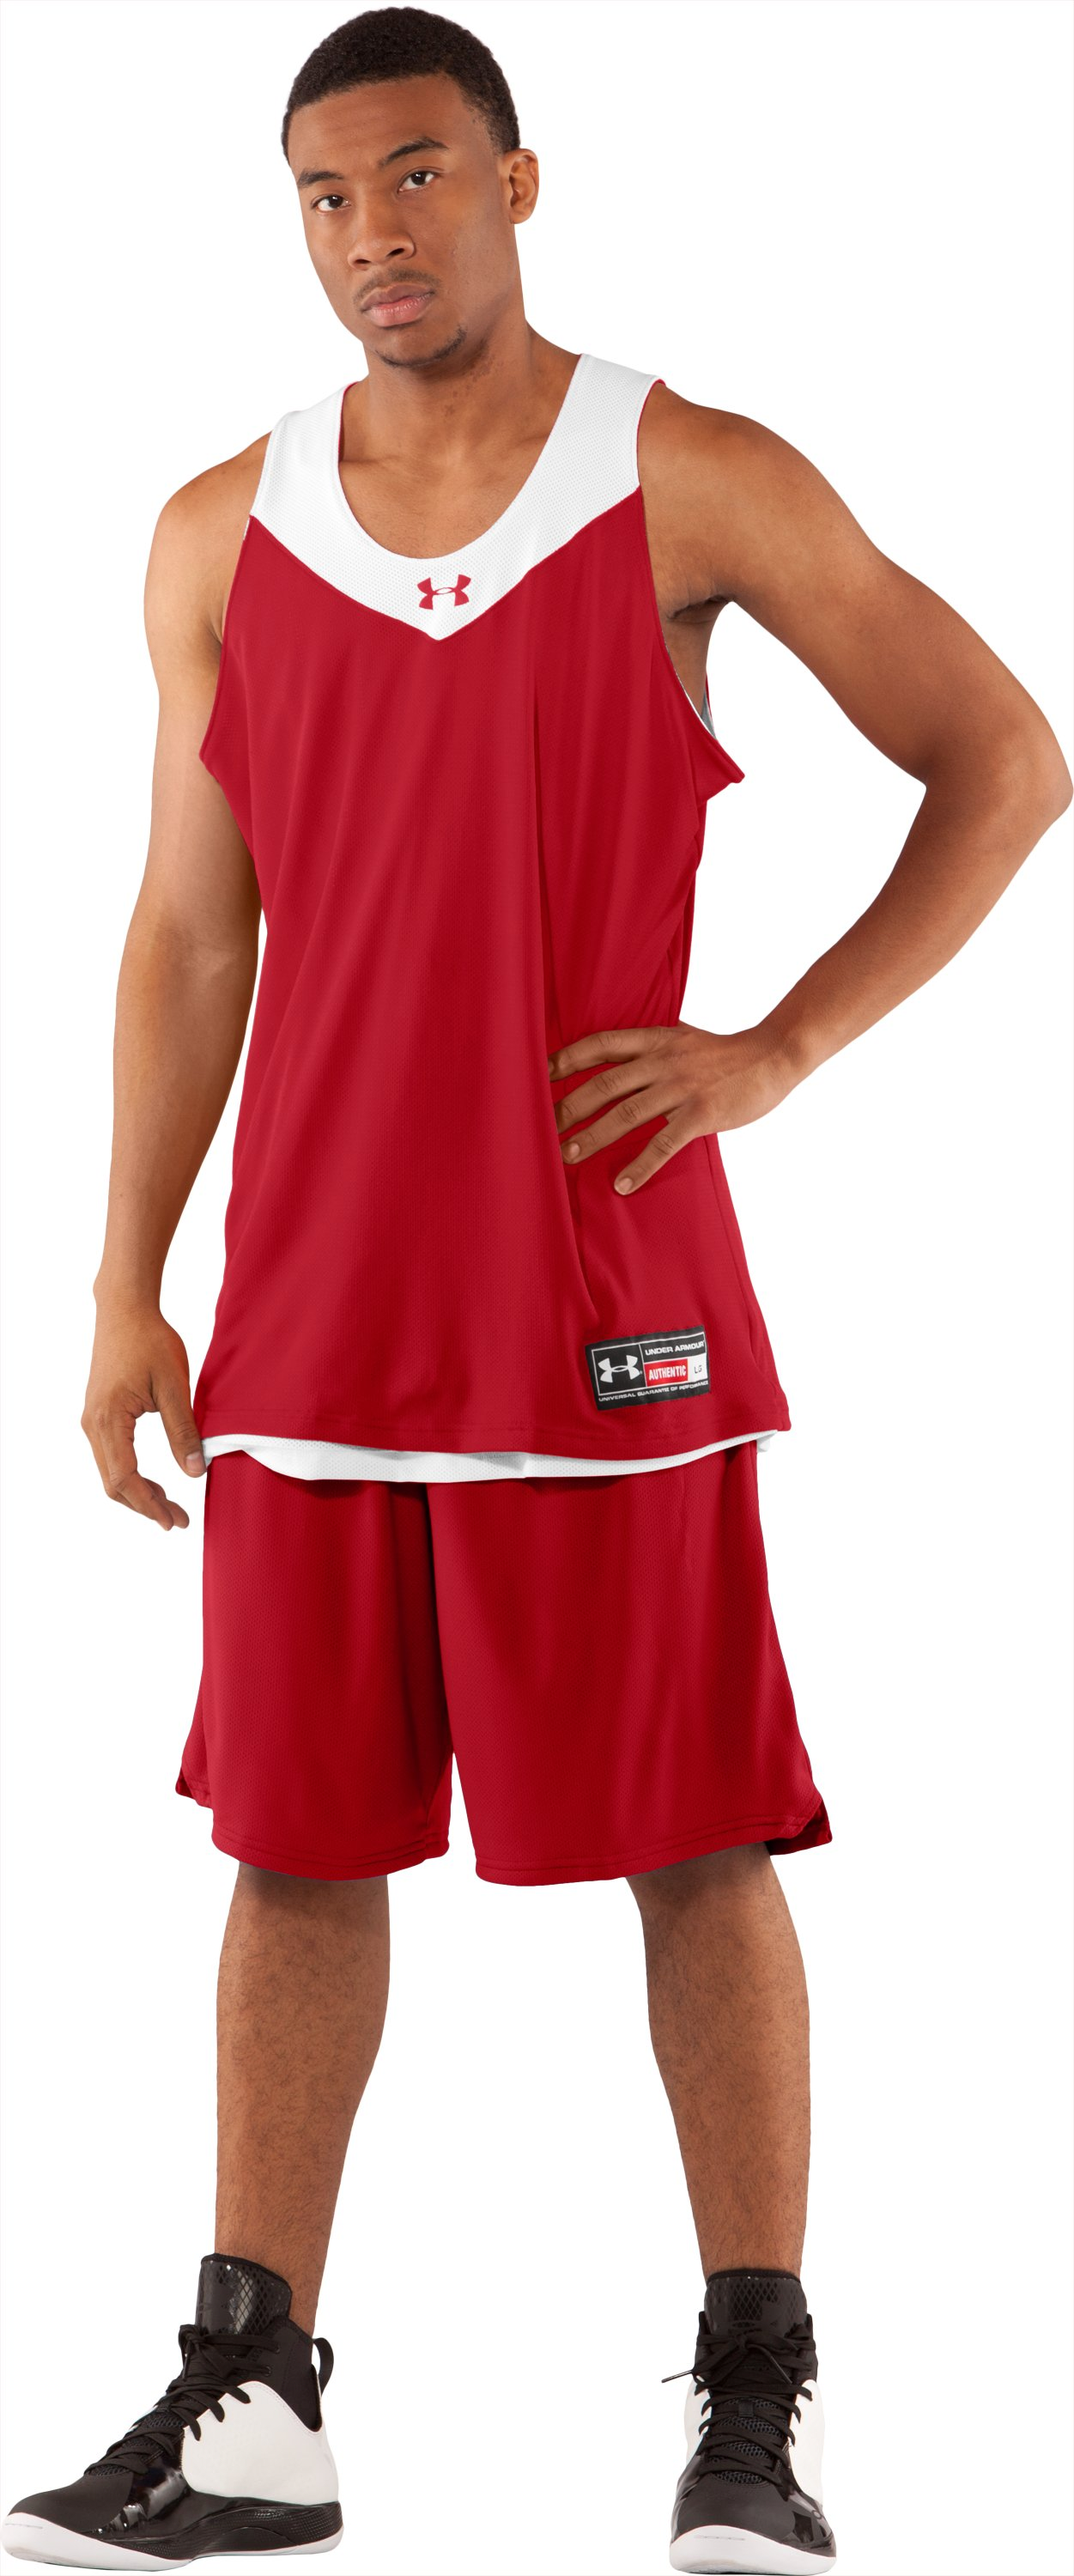 Men's Repeat Reversible Basketball Jersey, Red, zoomed image